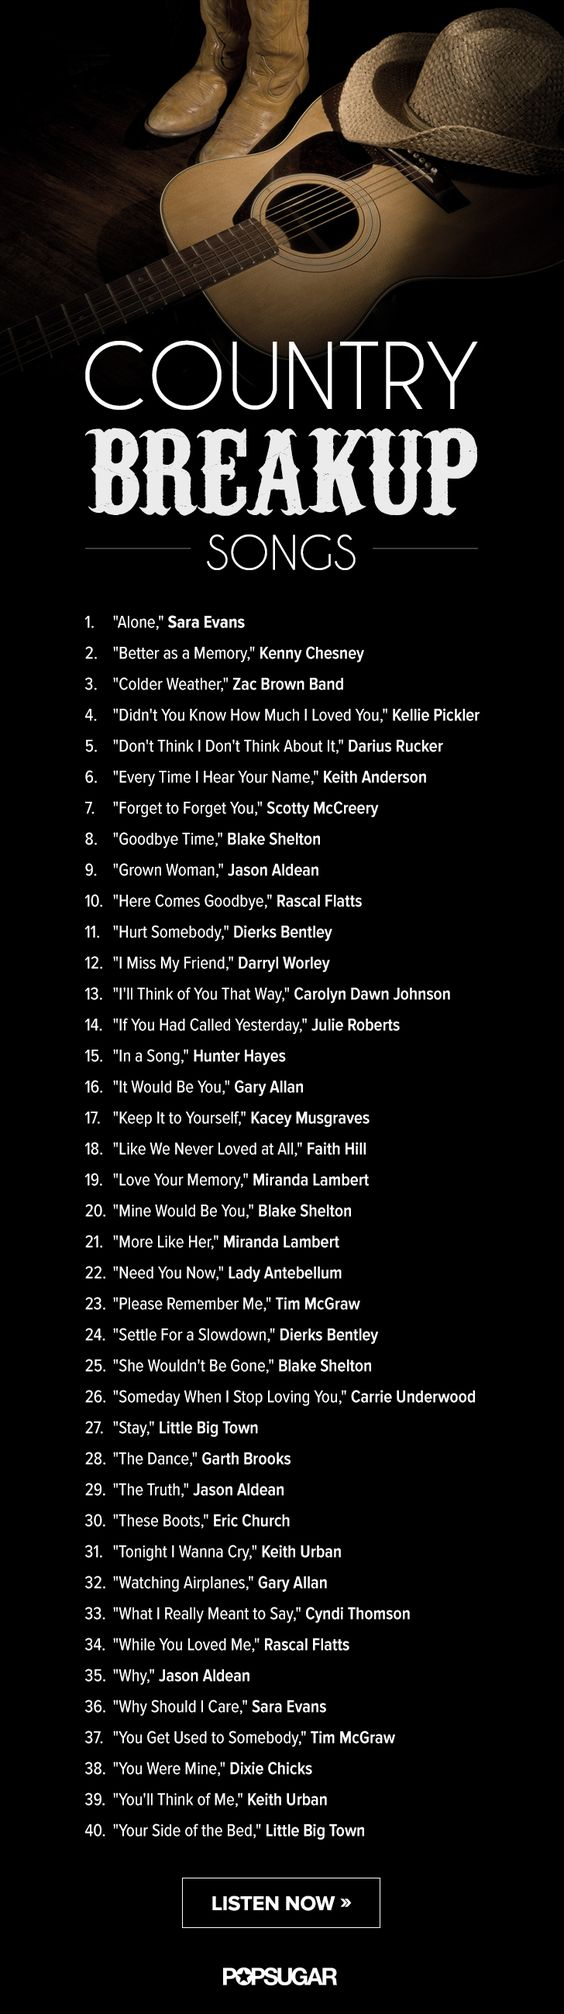 40 country breakup songs for a good cry itunes awesome for Sad country music videos that make you cry